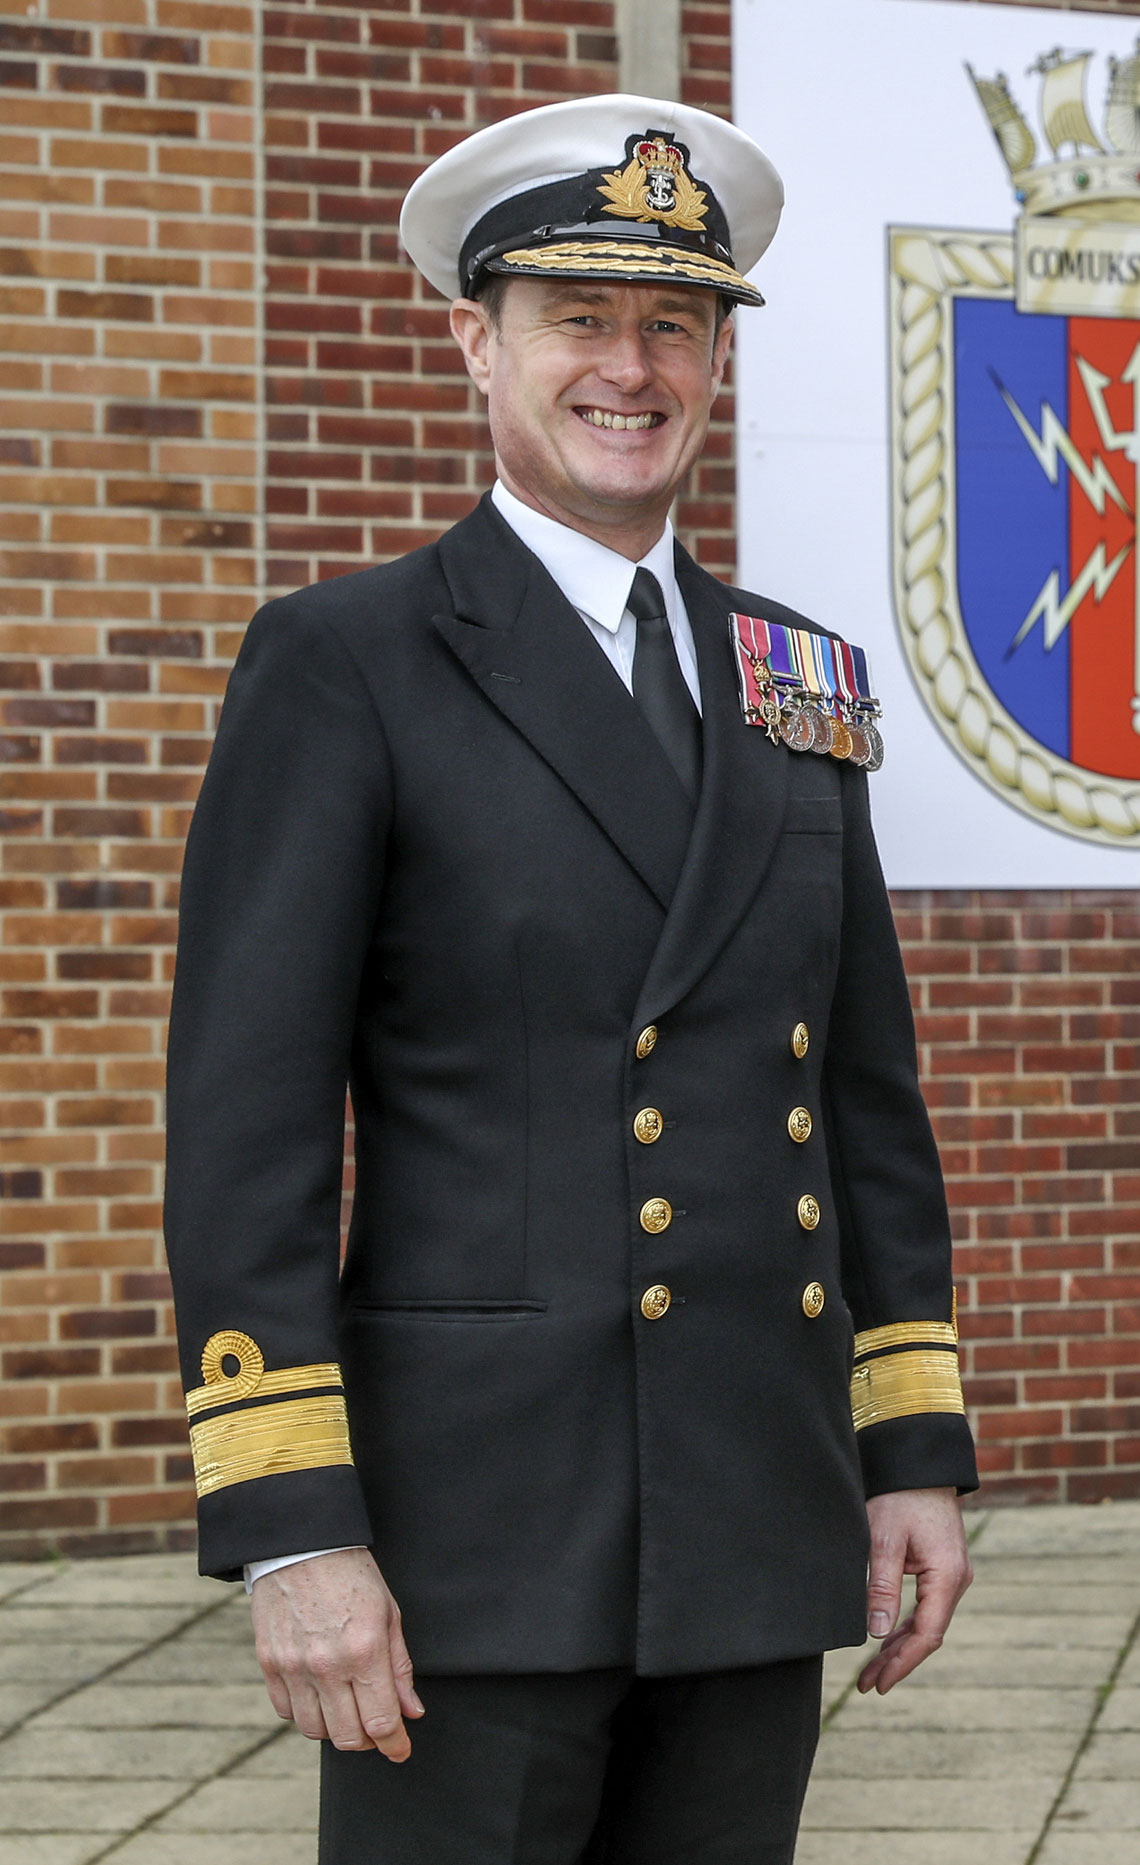 Rear Admiral Andy Burns